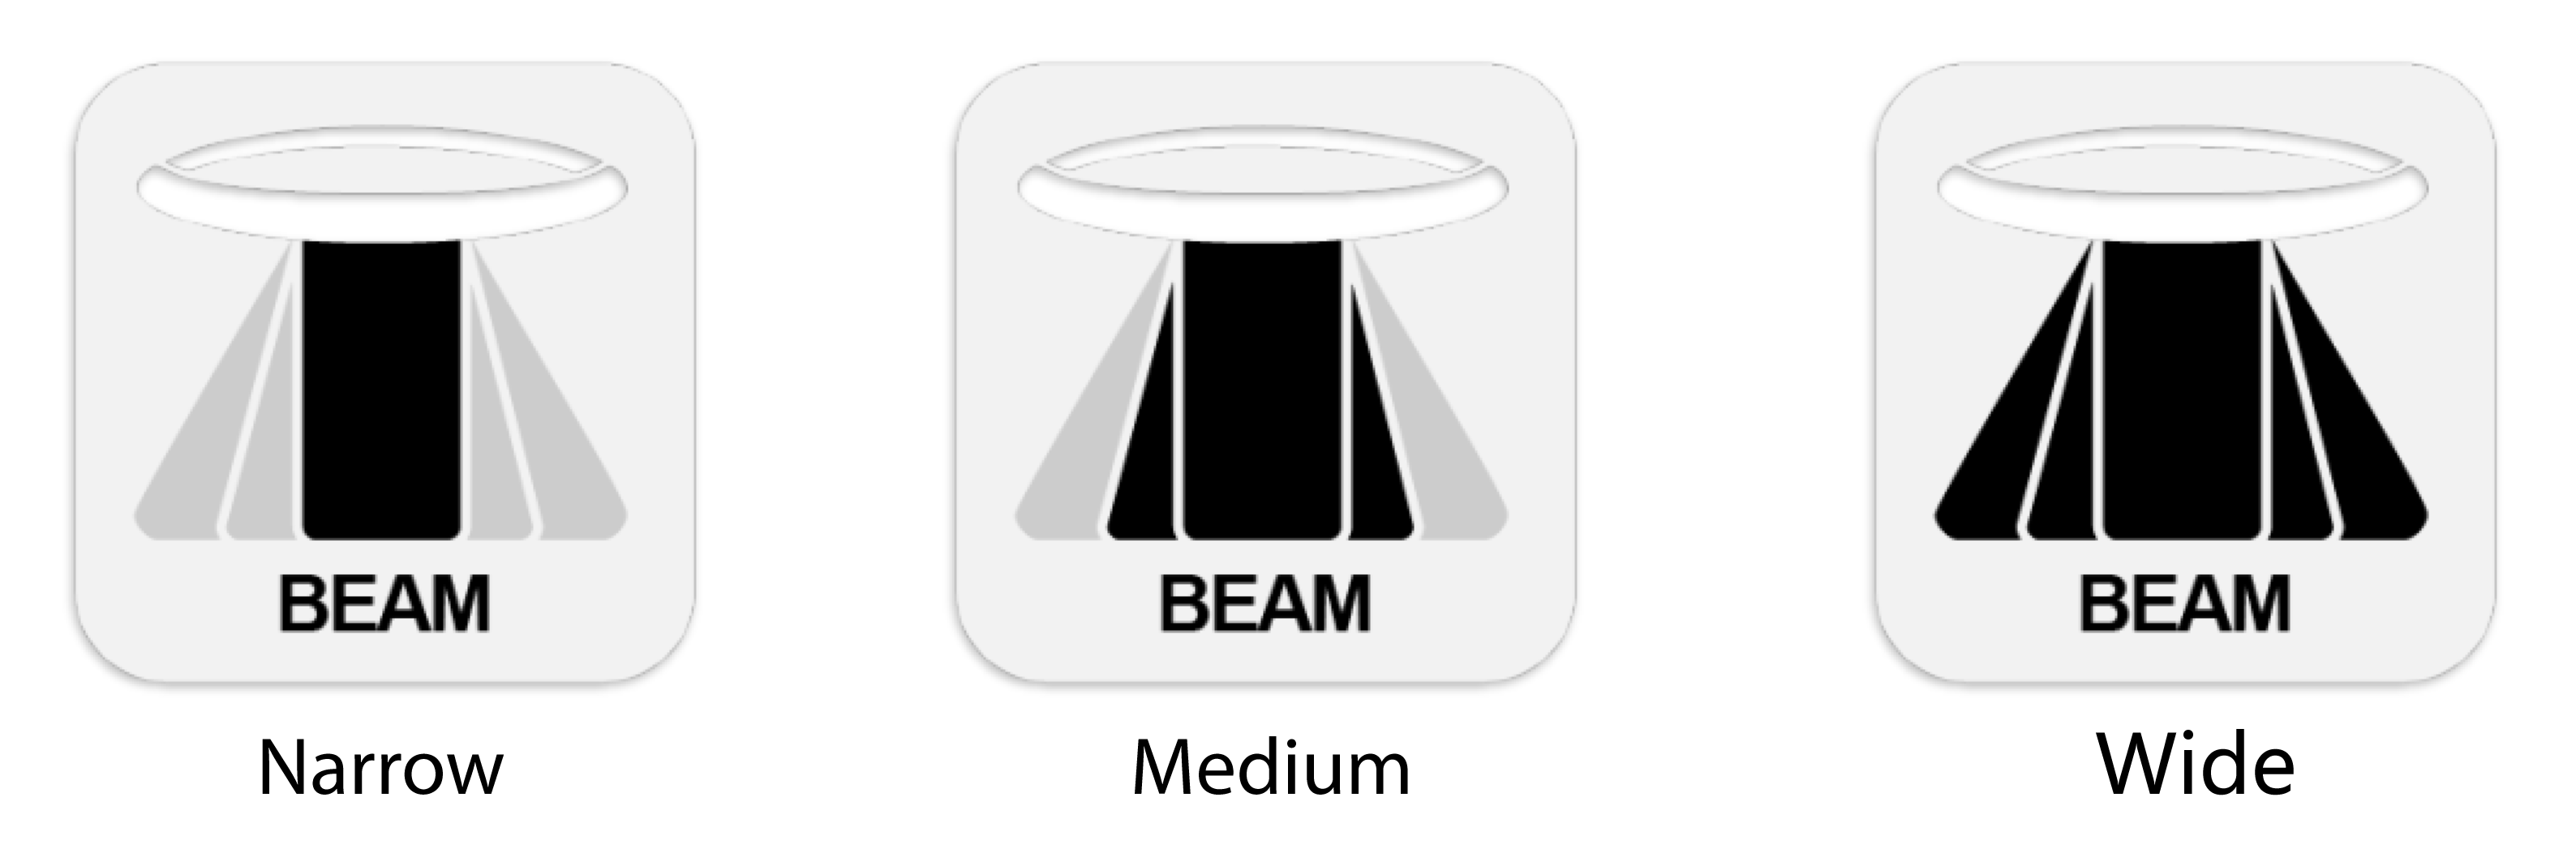 Narrow, Medium, and Wide ceiling beam icons.